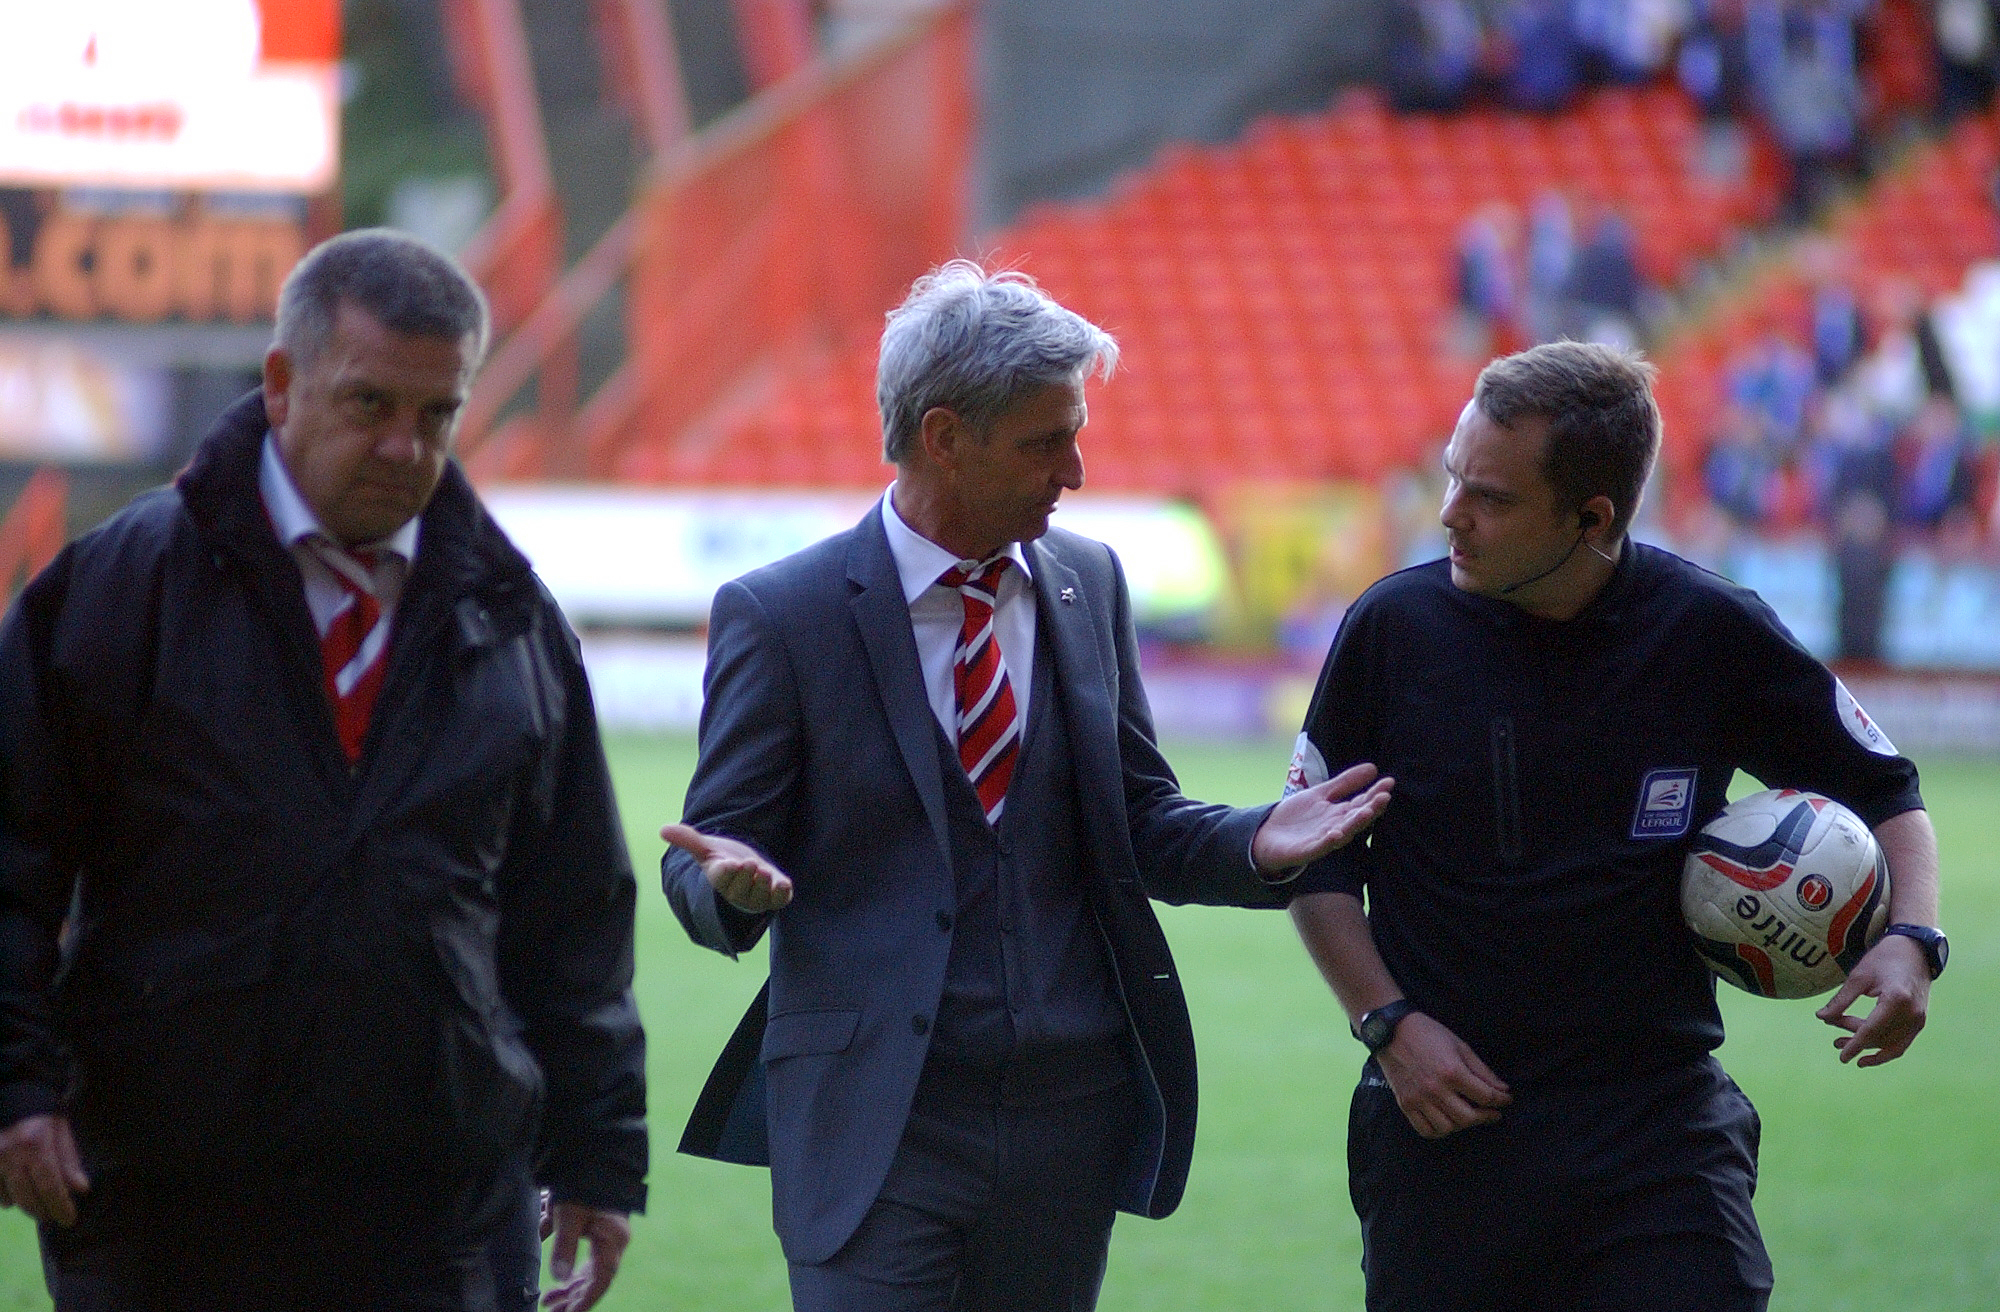 Head coach Jose Riga has words with the officials after the Blackburn game